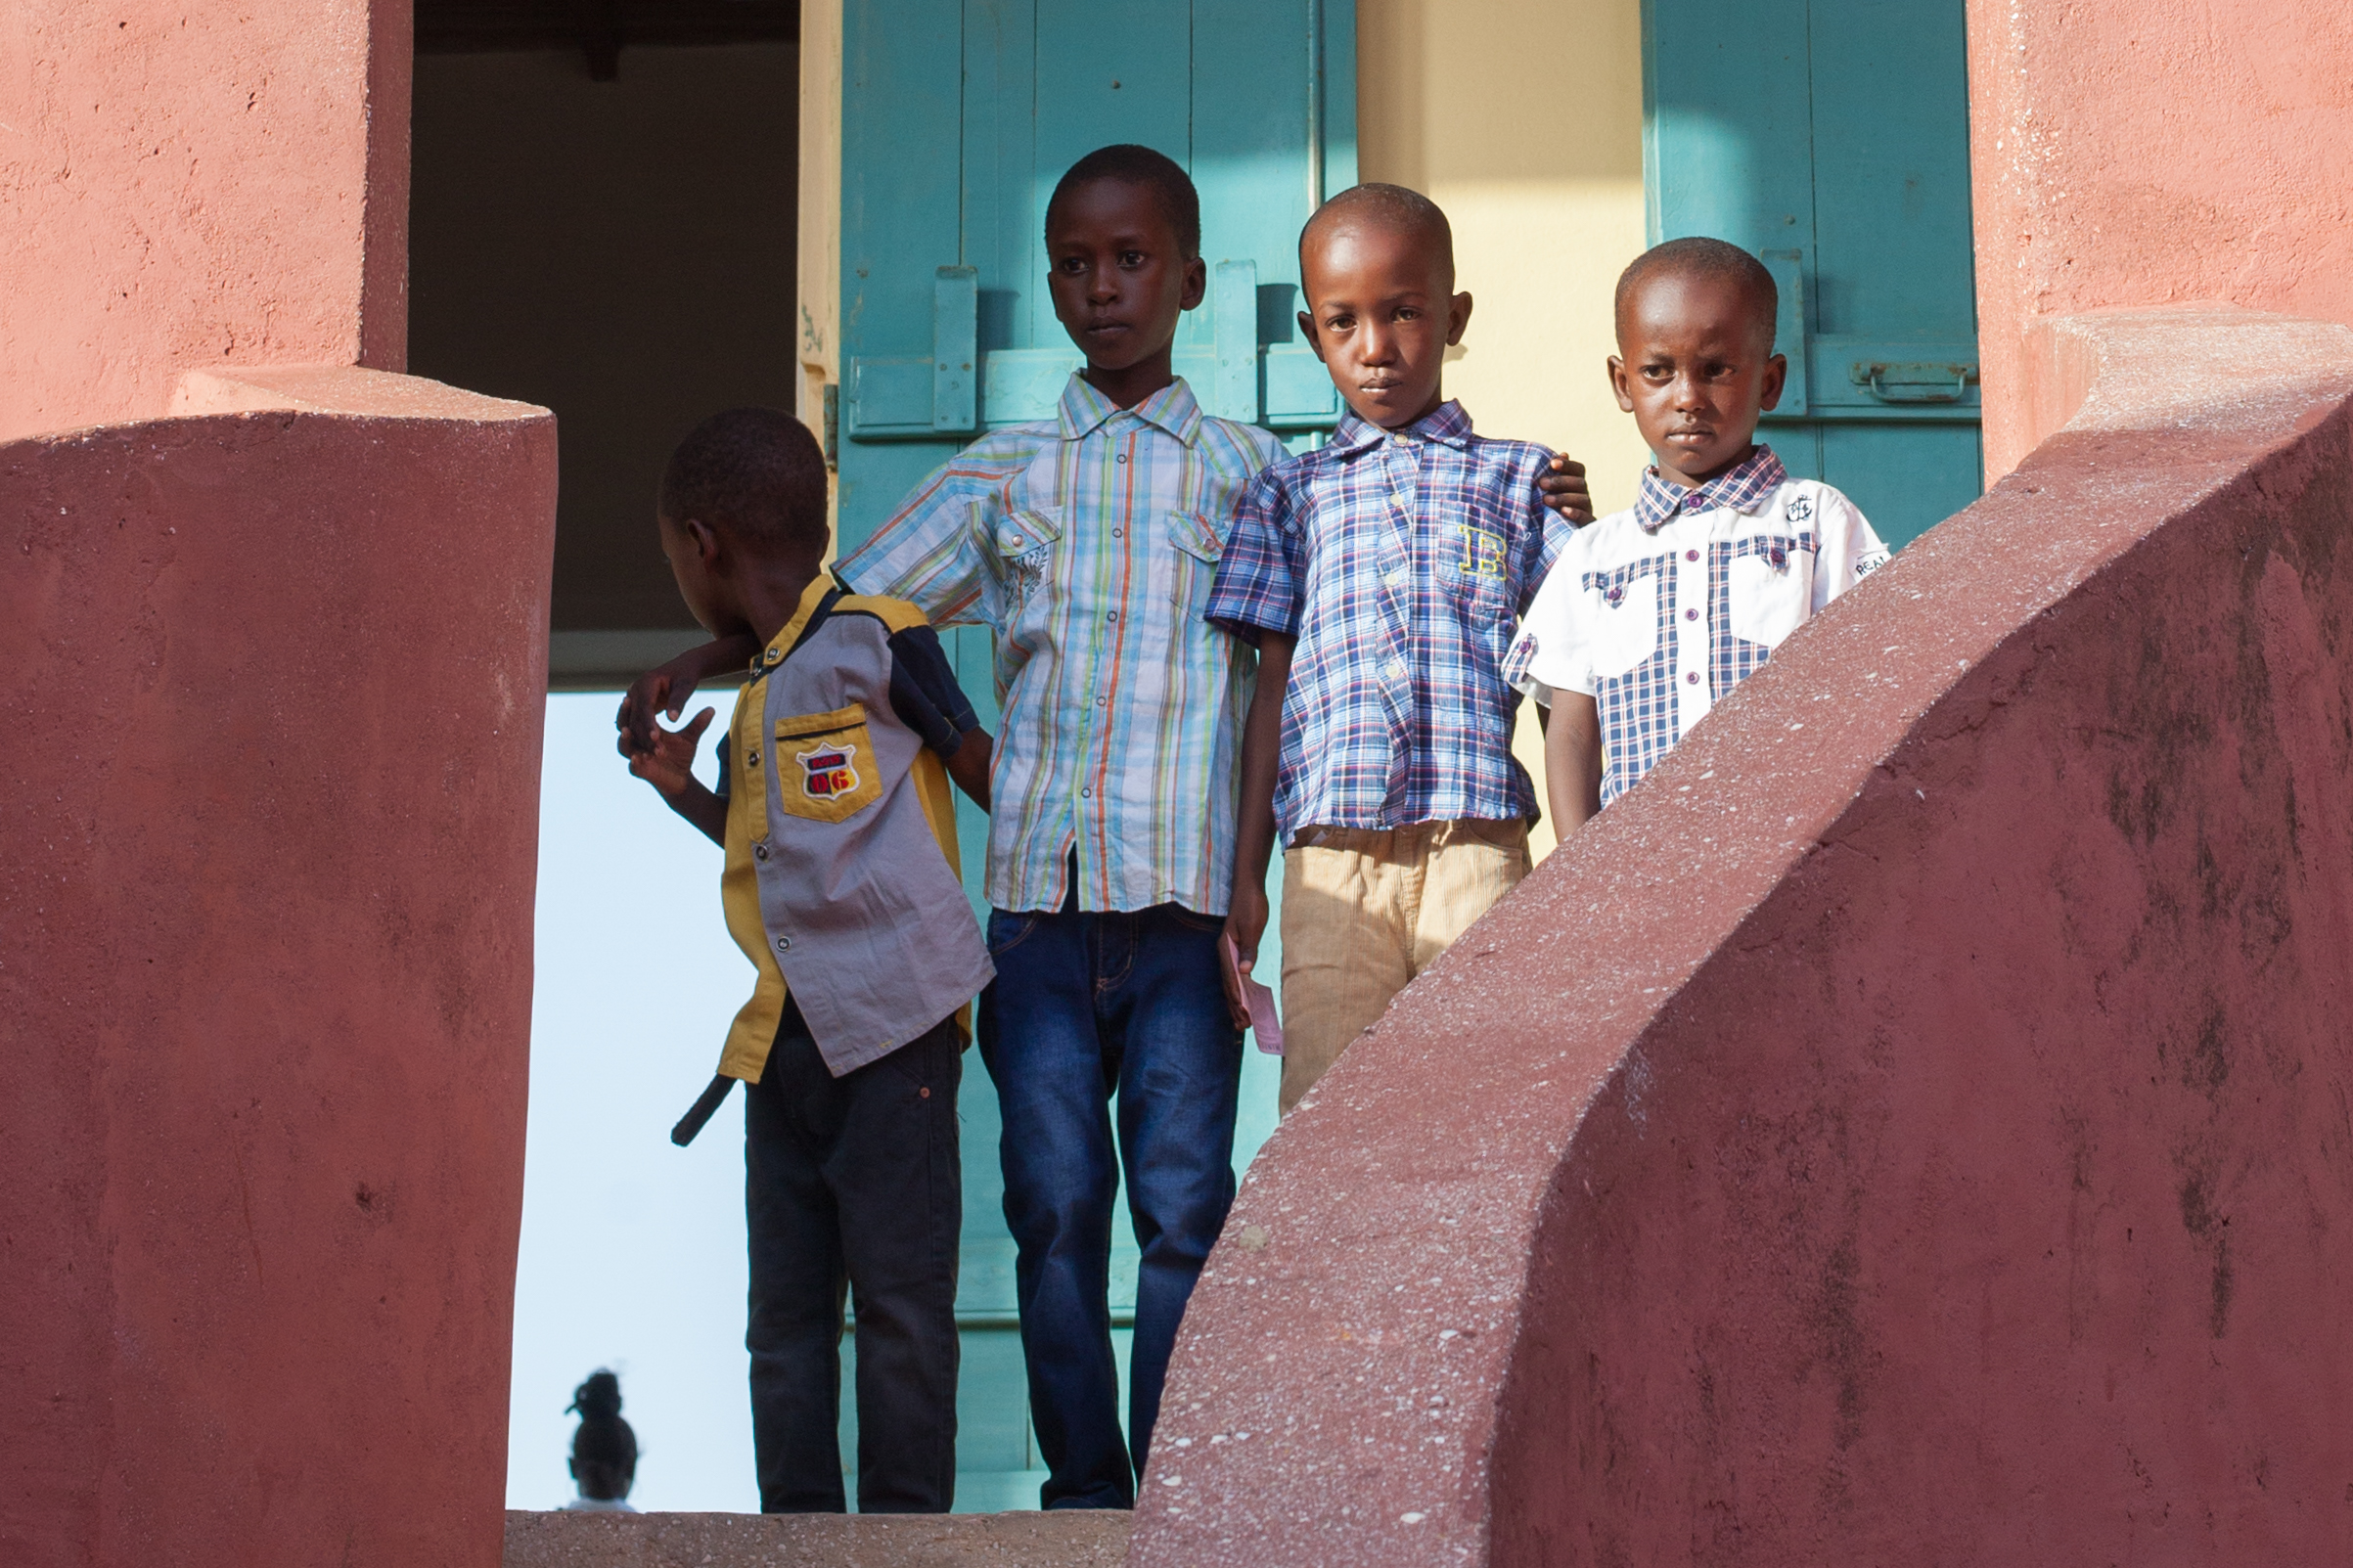 African children stand in front of the slave house on the Island of Gorée, Dakar, Senegal.